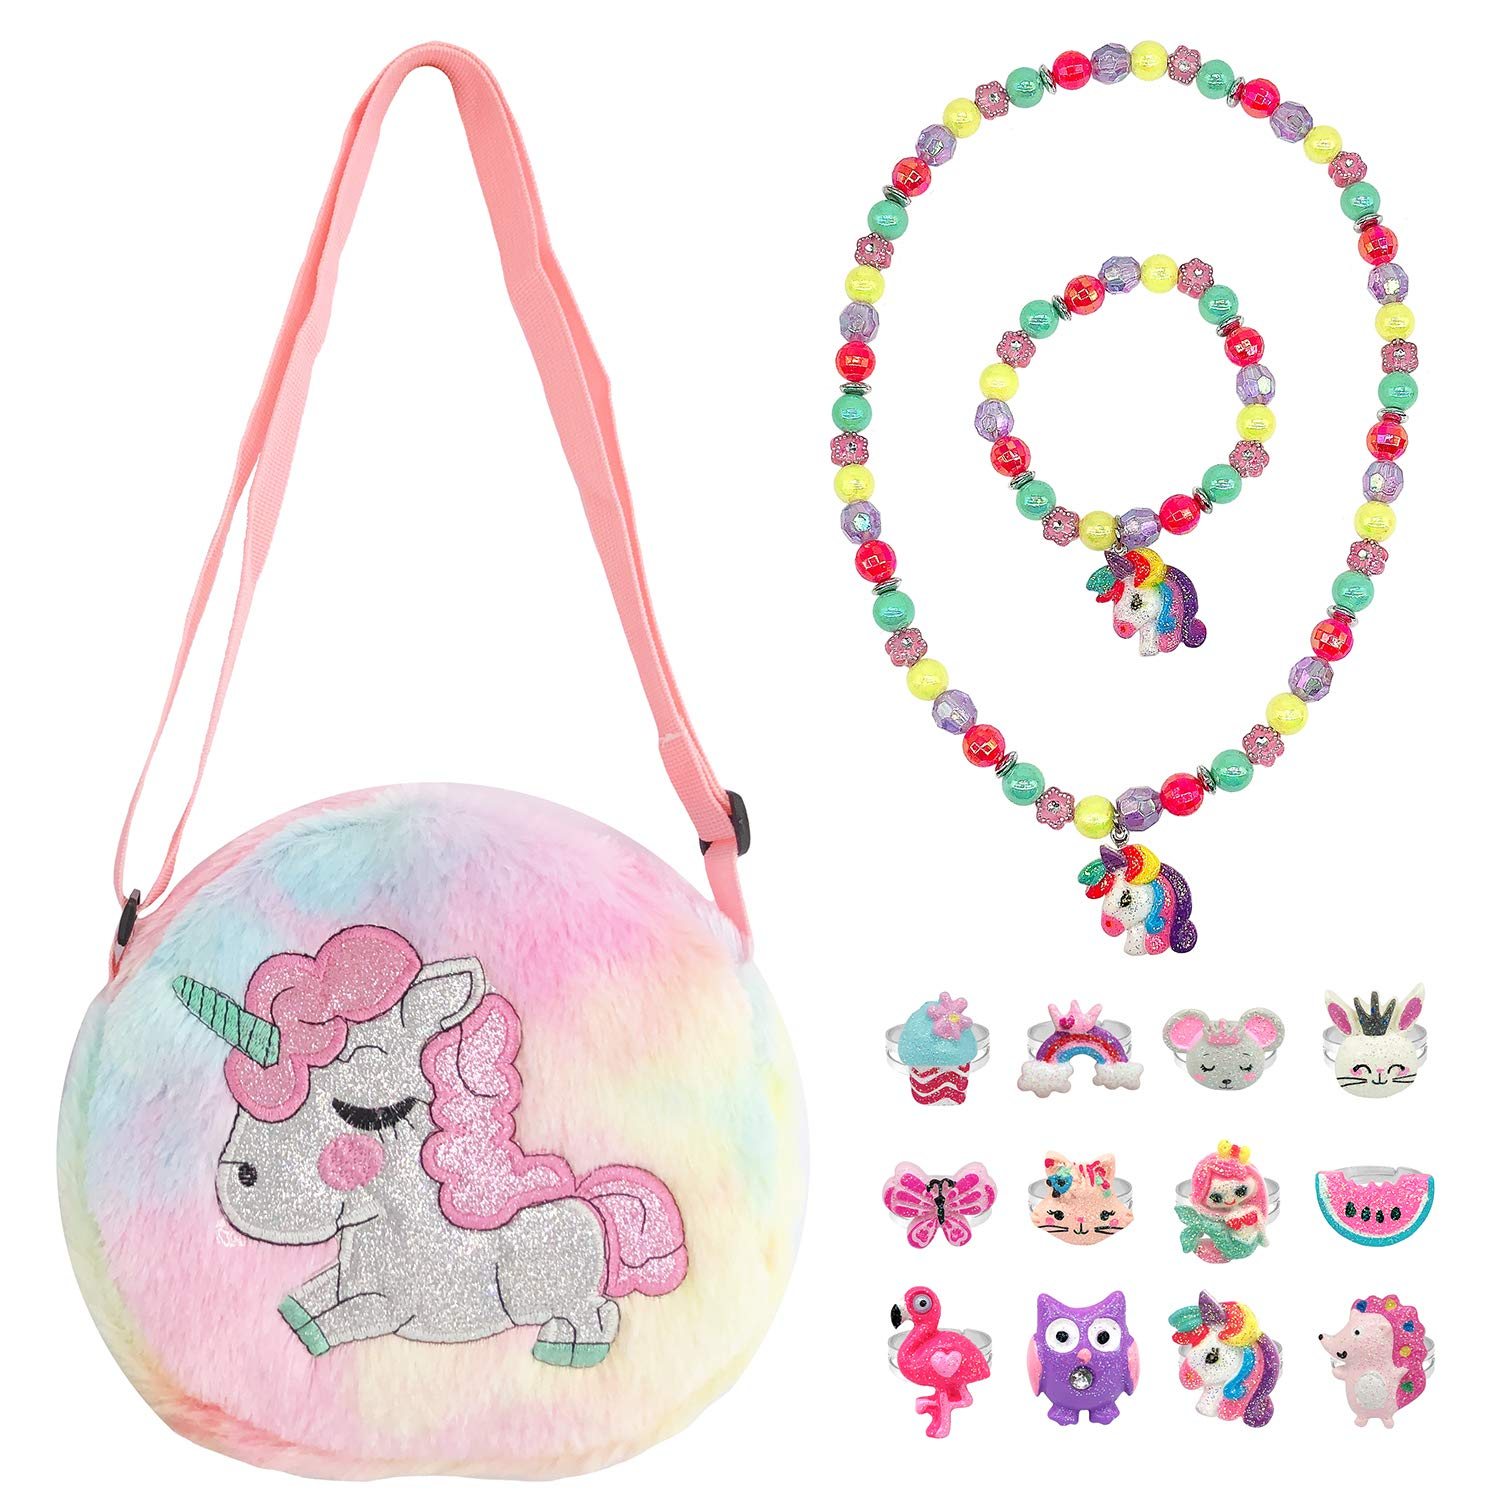 Elesa Miracle Little Girl Plush Purse Handbag Kids Necklace Pretend Play Toy Playset Jewelry Crossbody Purse for Children Toddler Baby Girls, Unicorn by Elesa Miracle